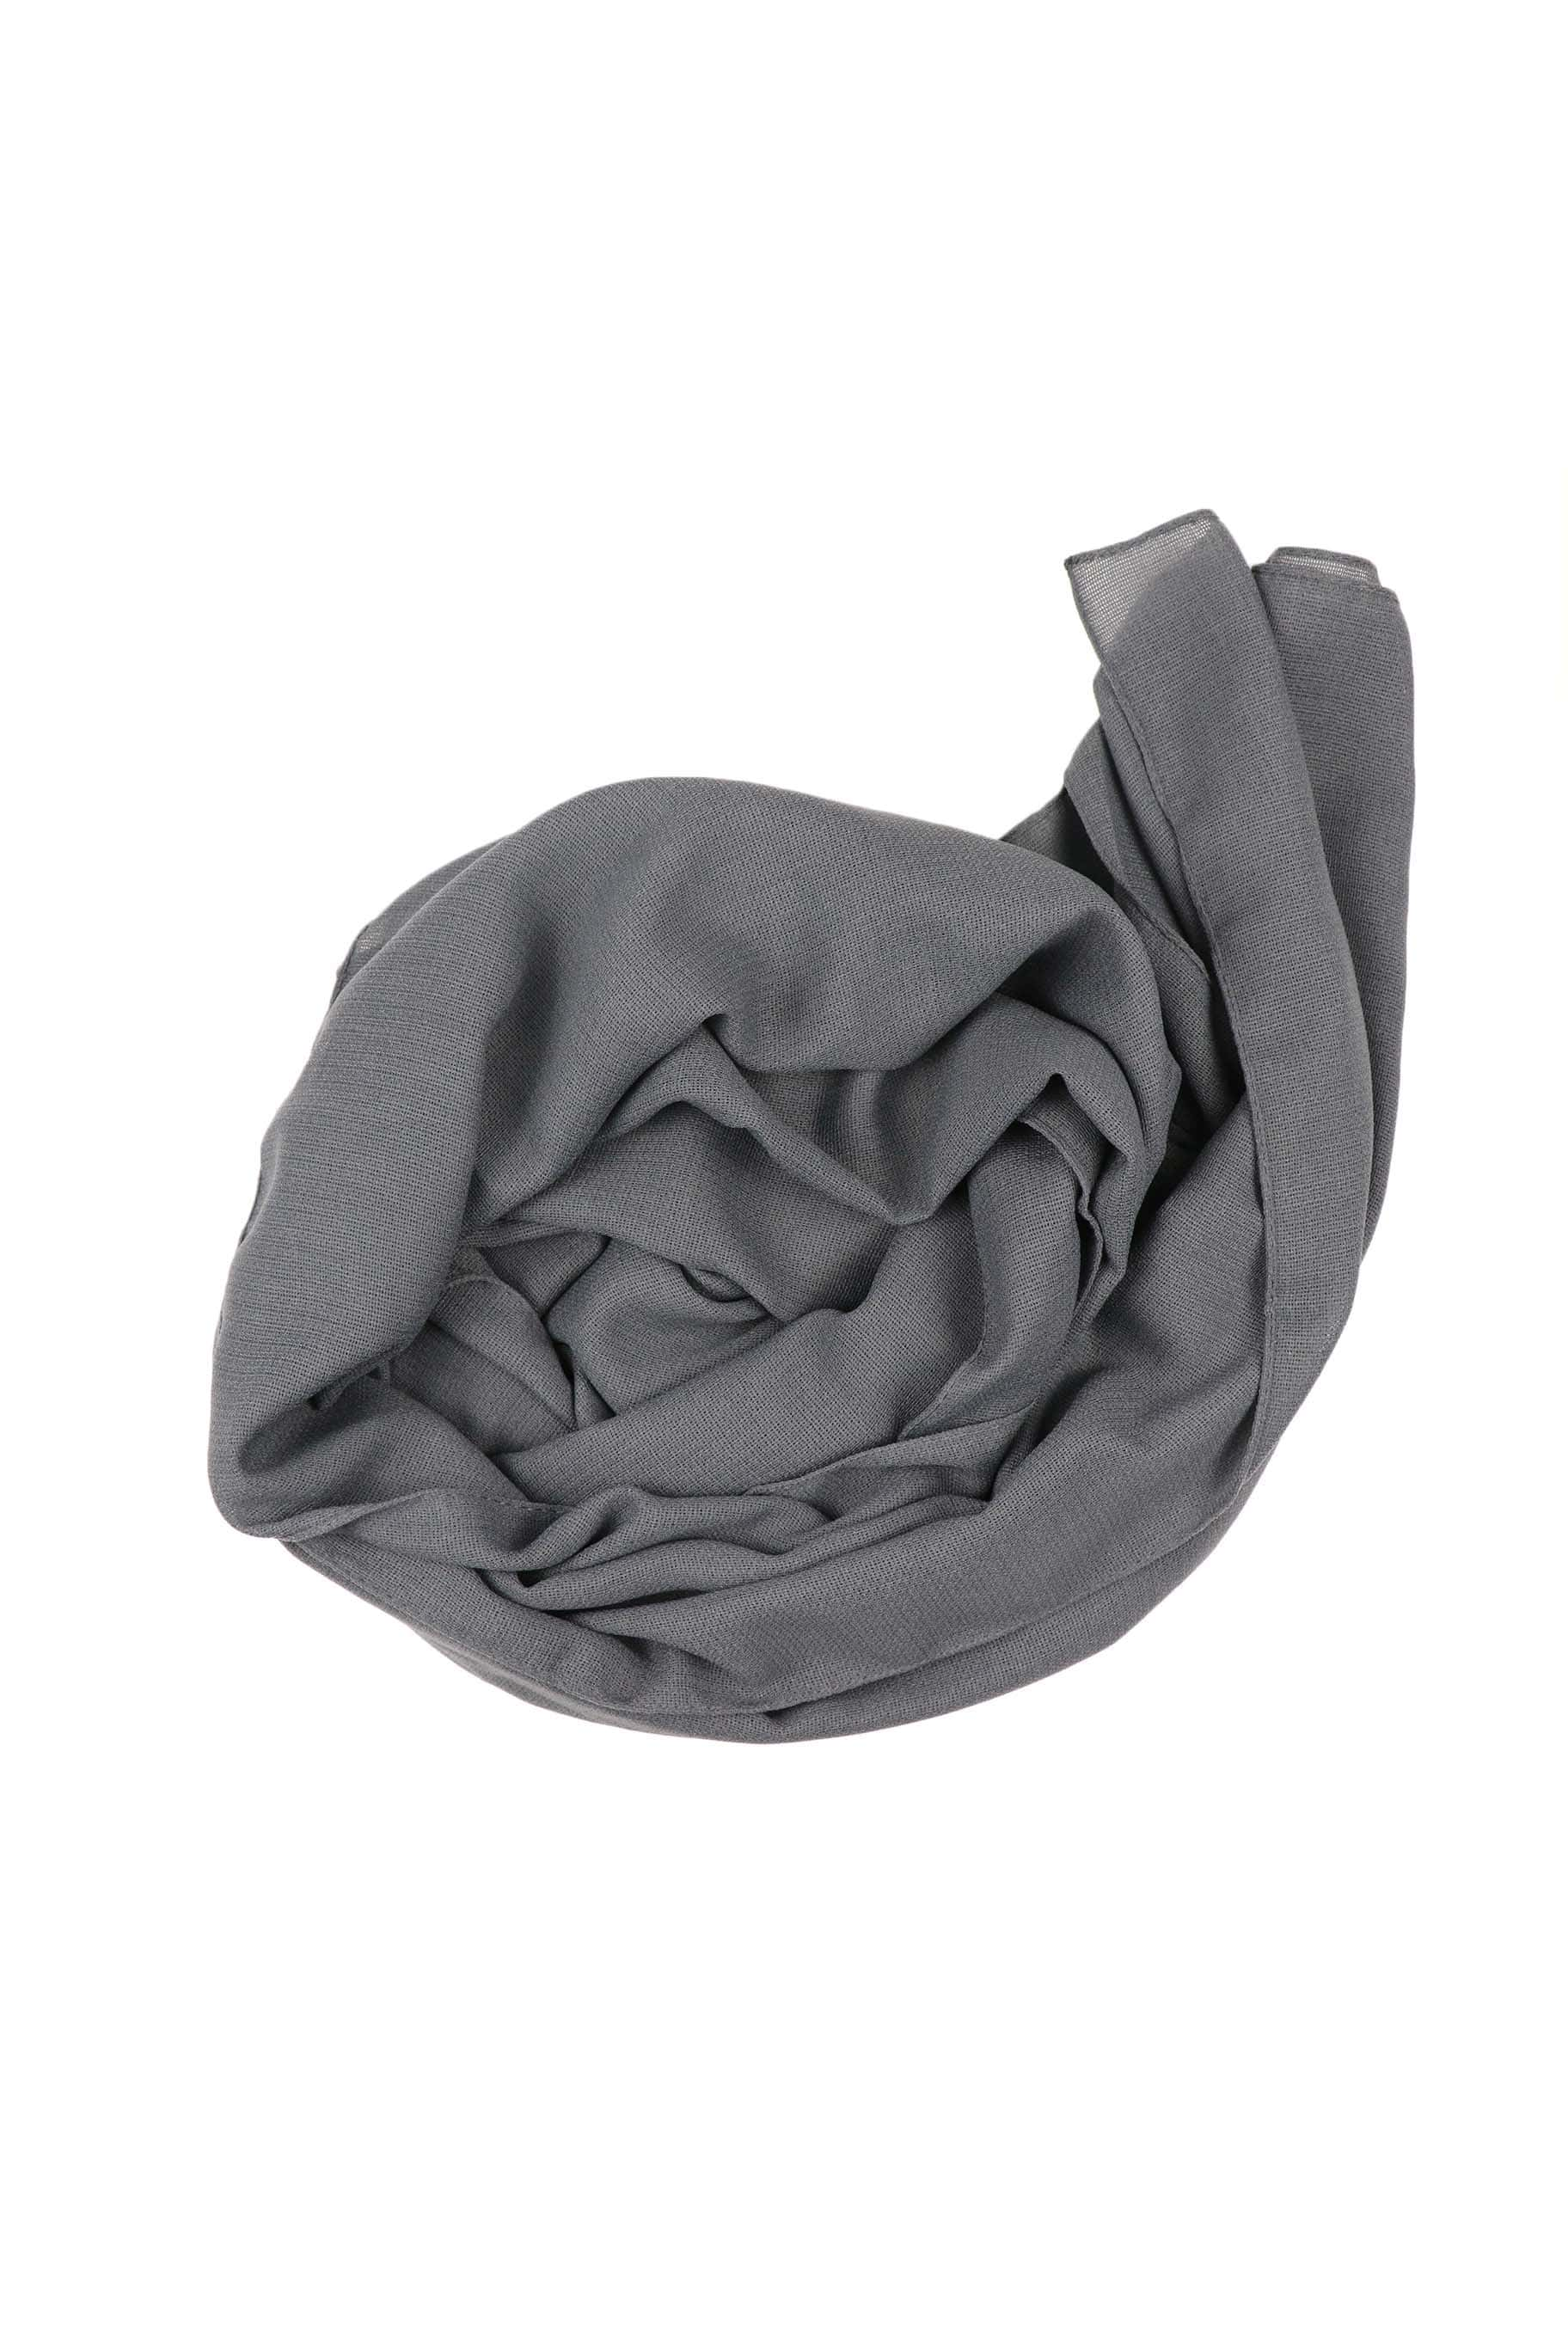 Deep Grey Jute Cotton - Jute-Cotton Hijab - The Modest Look